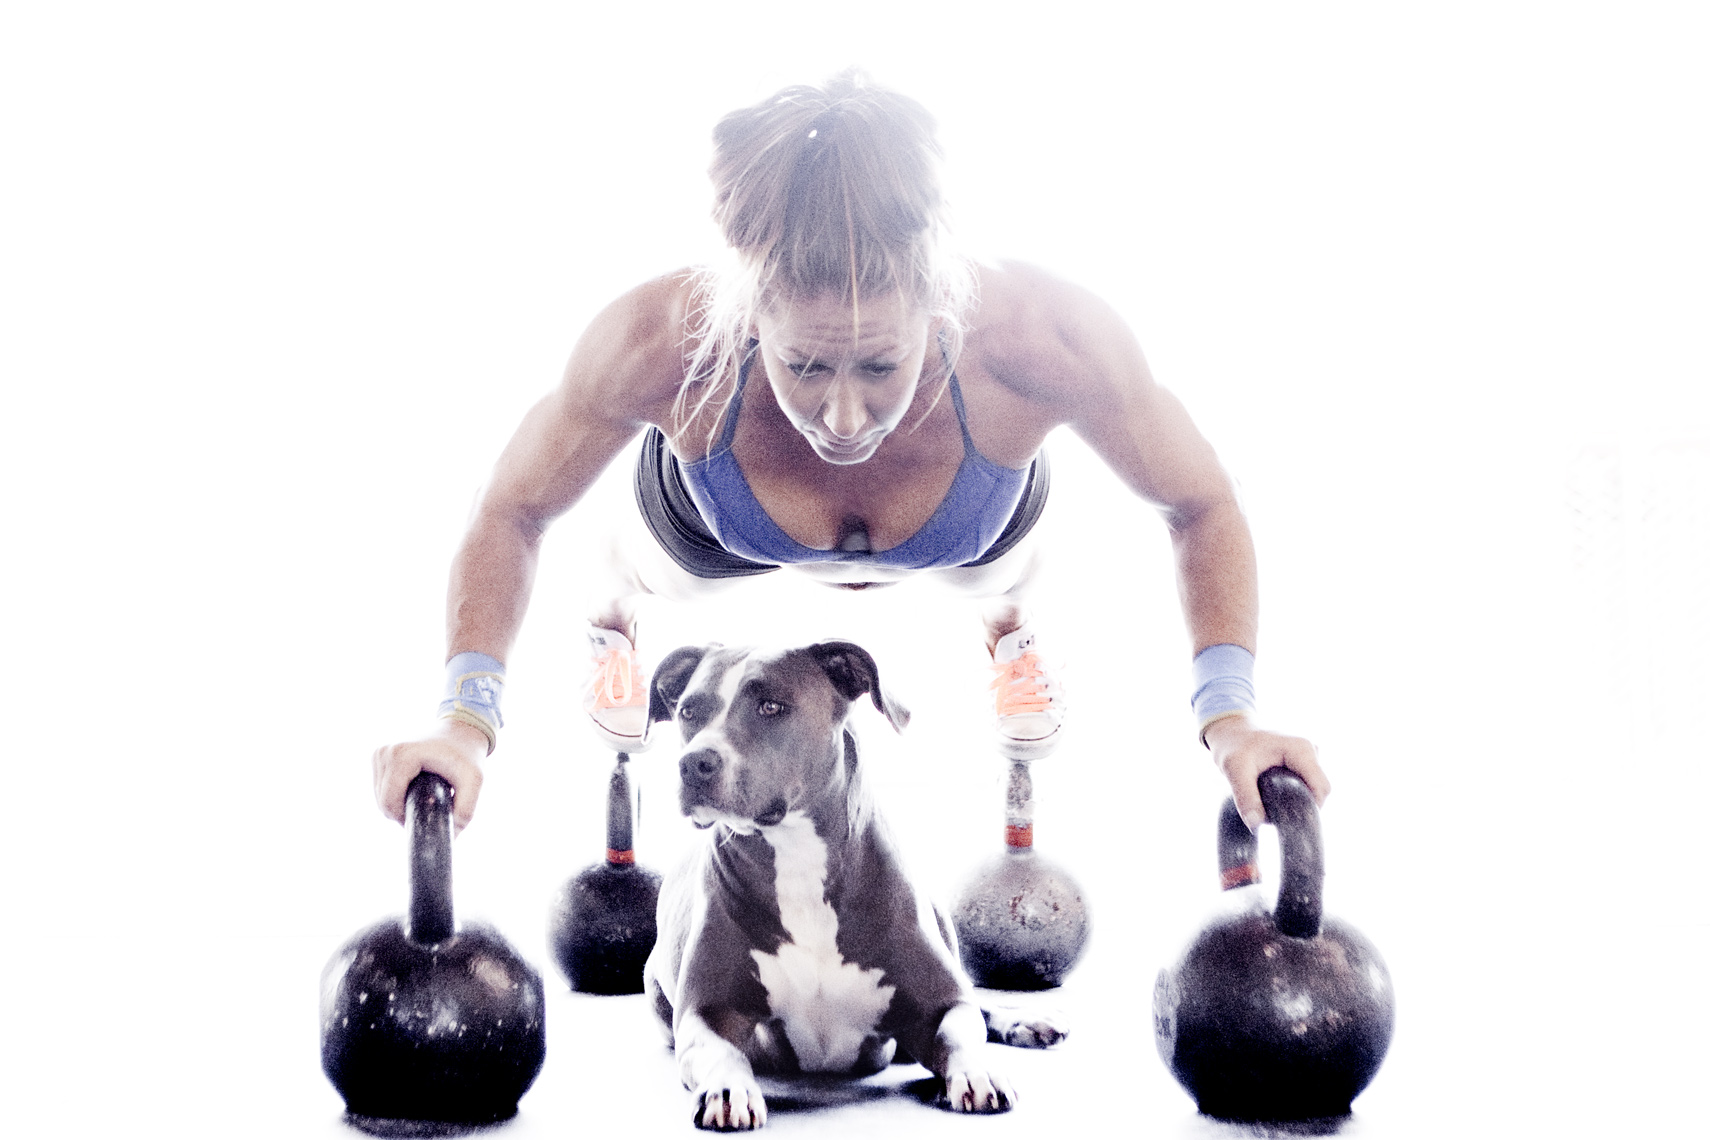 Crossfit, LA Dog Photography, Michael Brian, Los Angeles, Sports, Kelly Urbani, Strength Wraps with Blue Nose Pit Bull kettlebell pushups, Orange Coast Crossfit